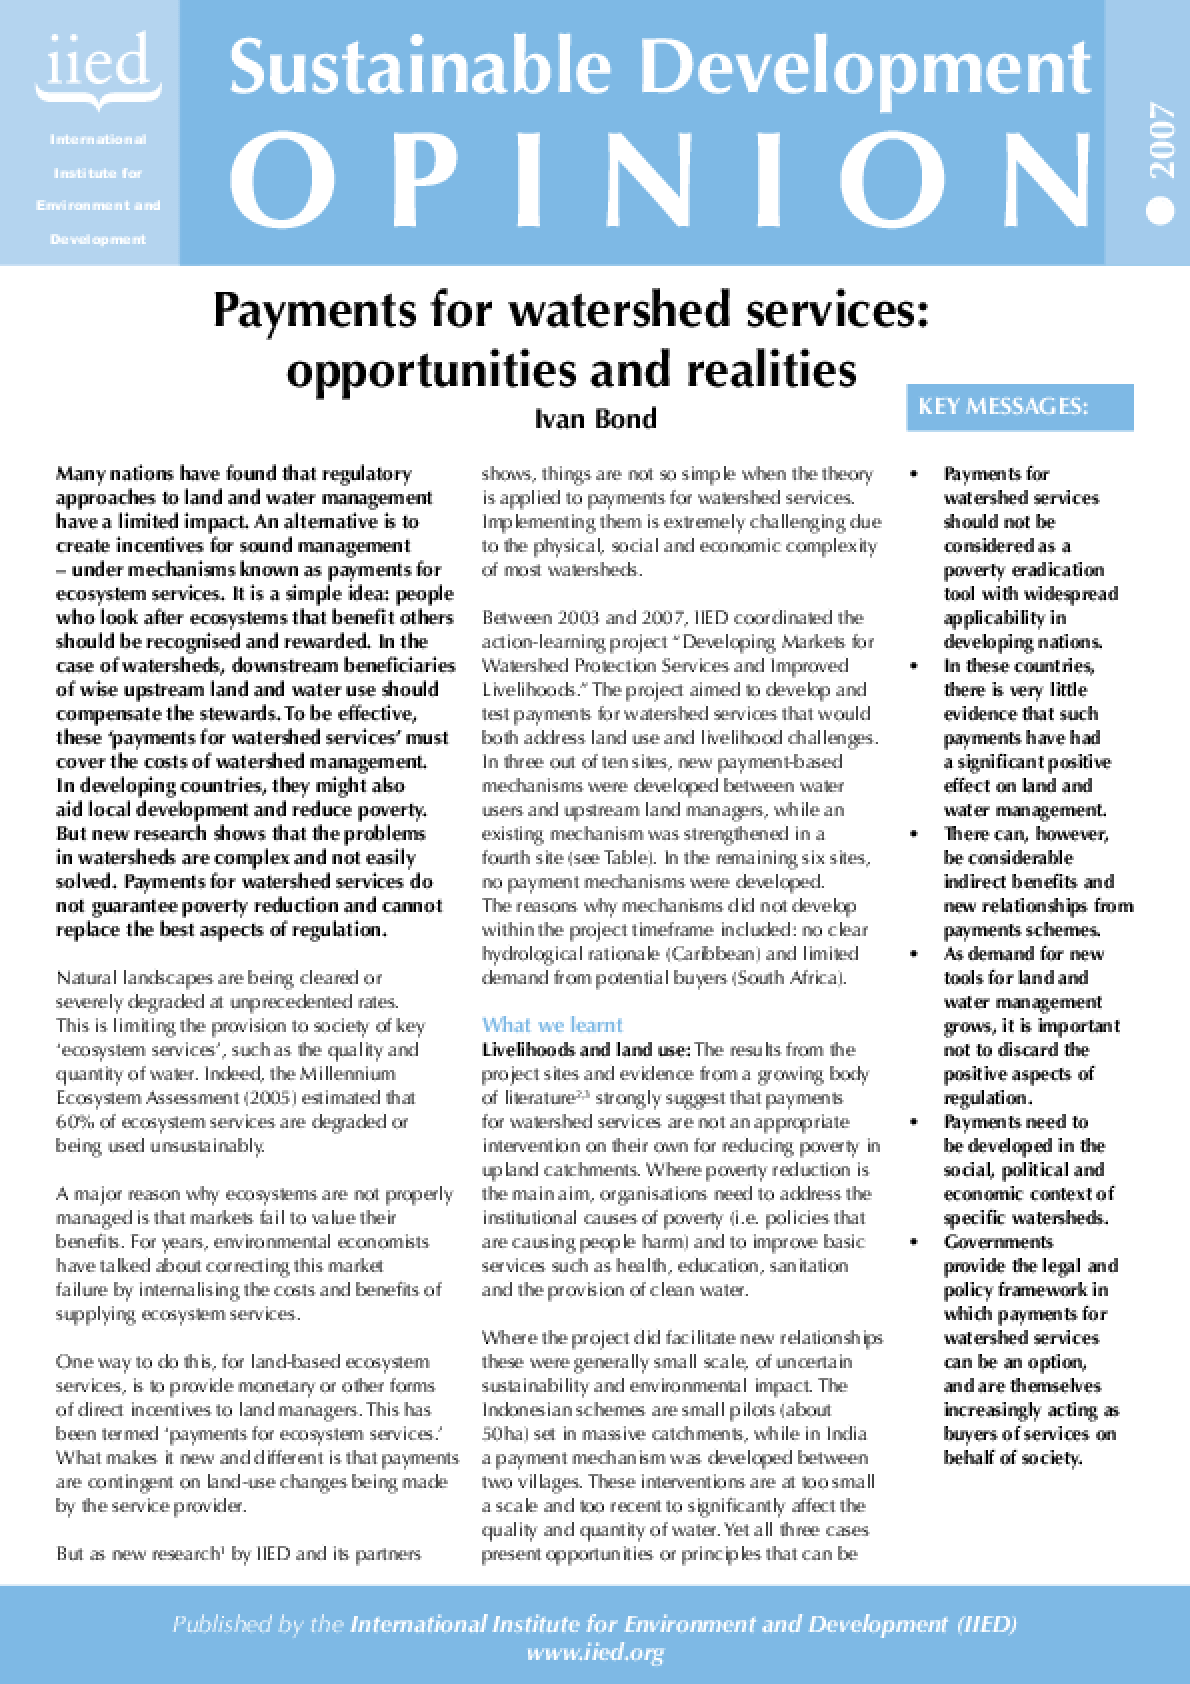 Payment for Watershed Services: Opportunities and Realities